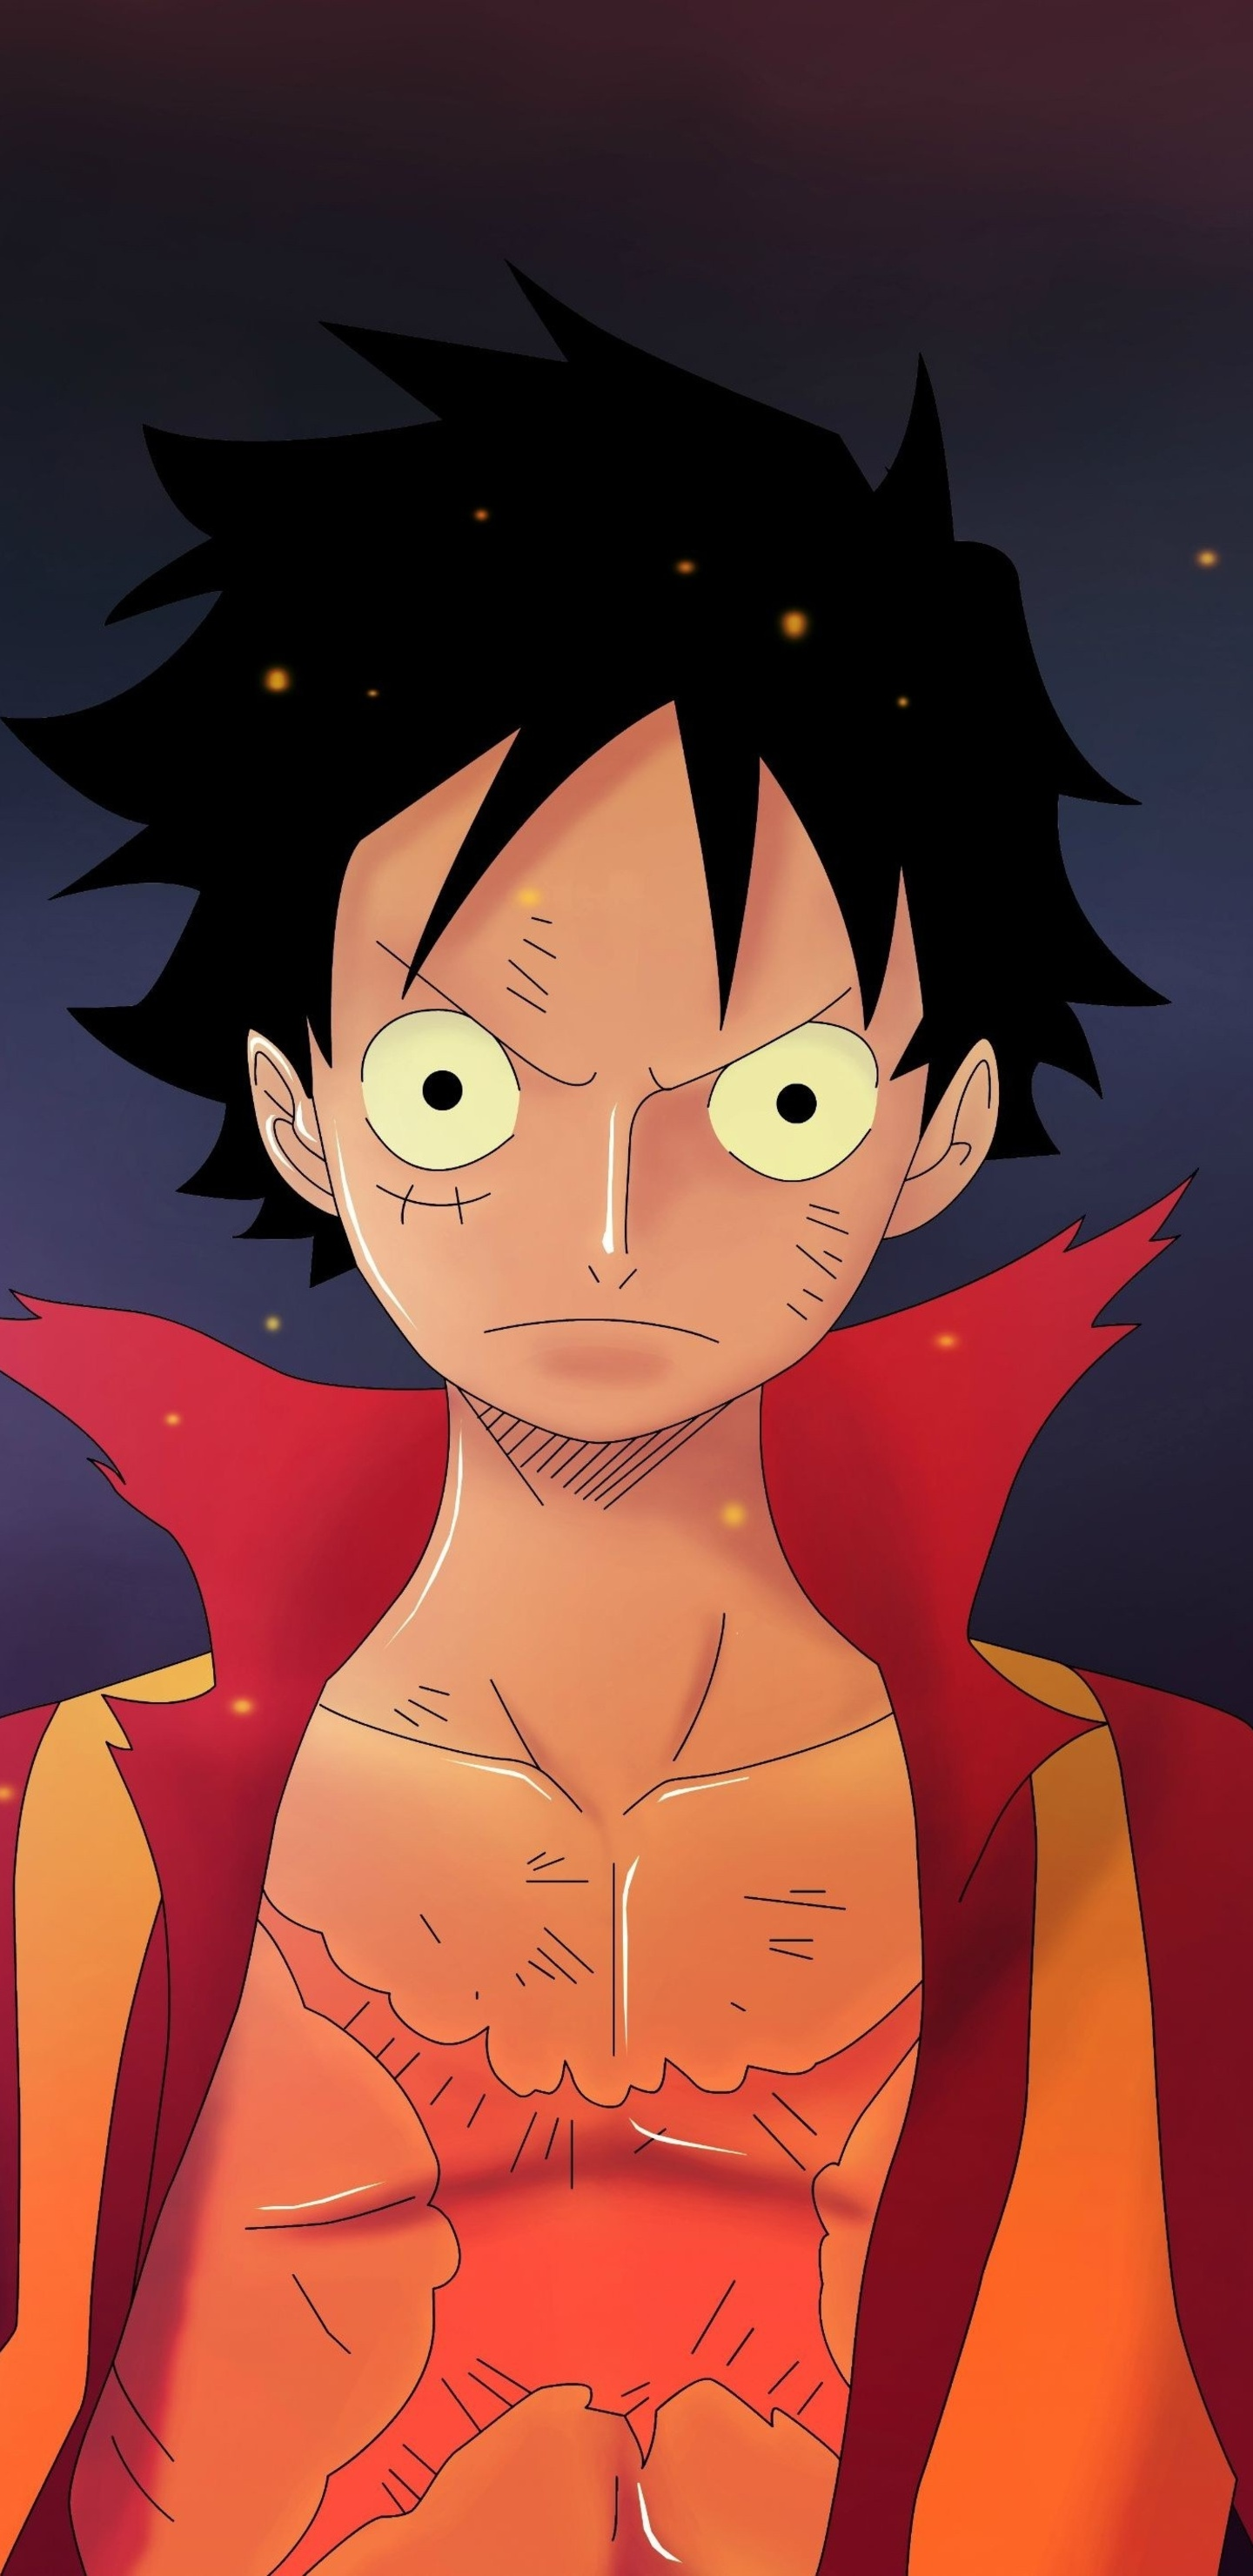 1440x2960 Monkey D Luffy One Piece 4k Samsung Galaxy Note 9 8 S9 S8